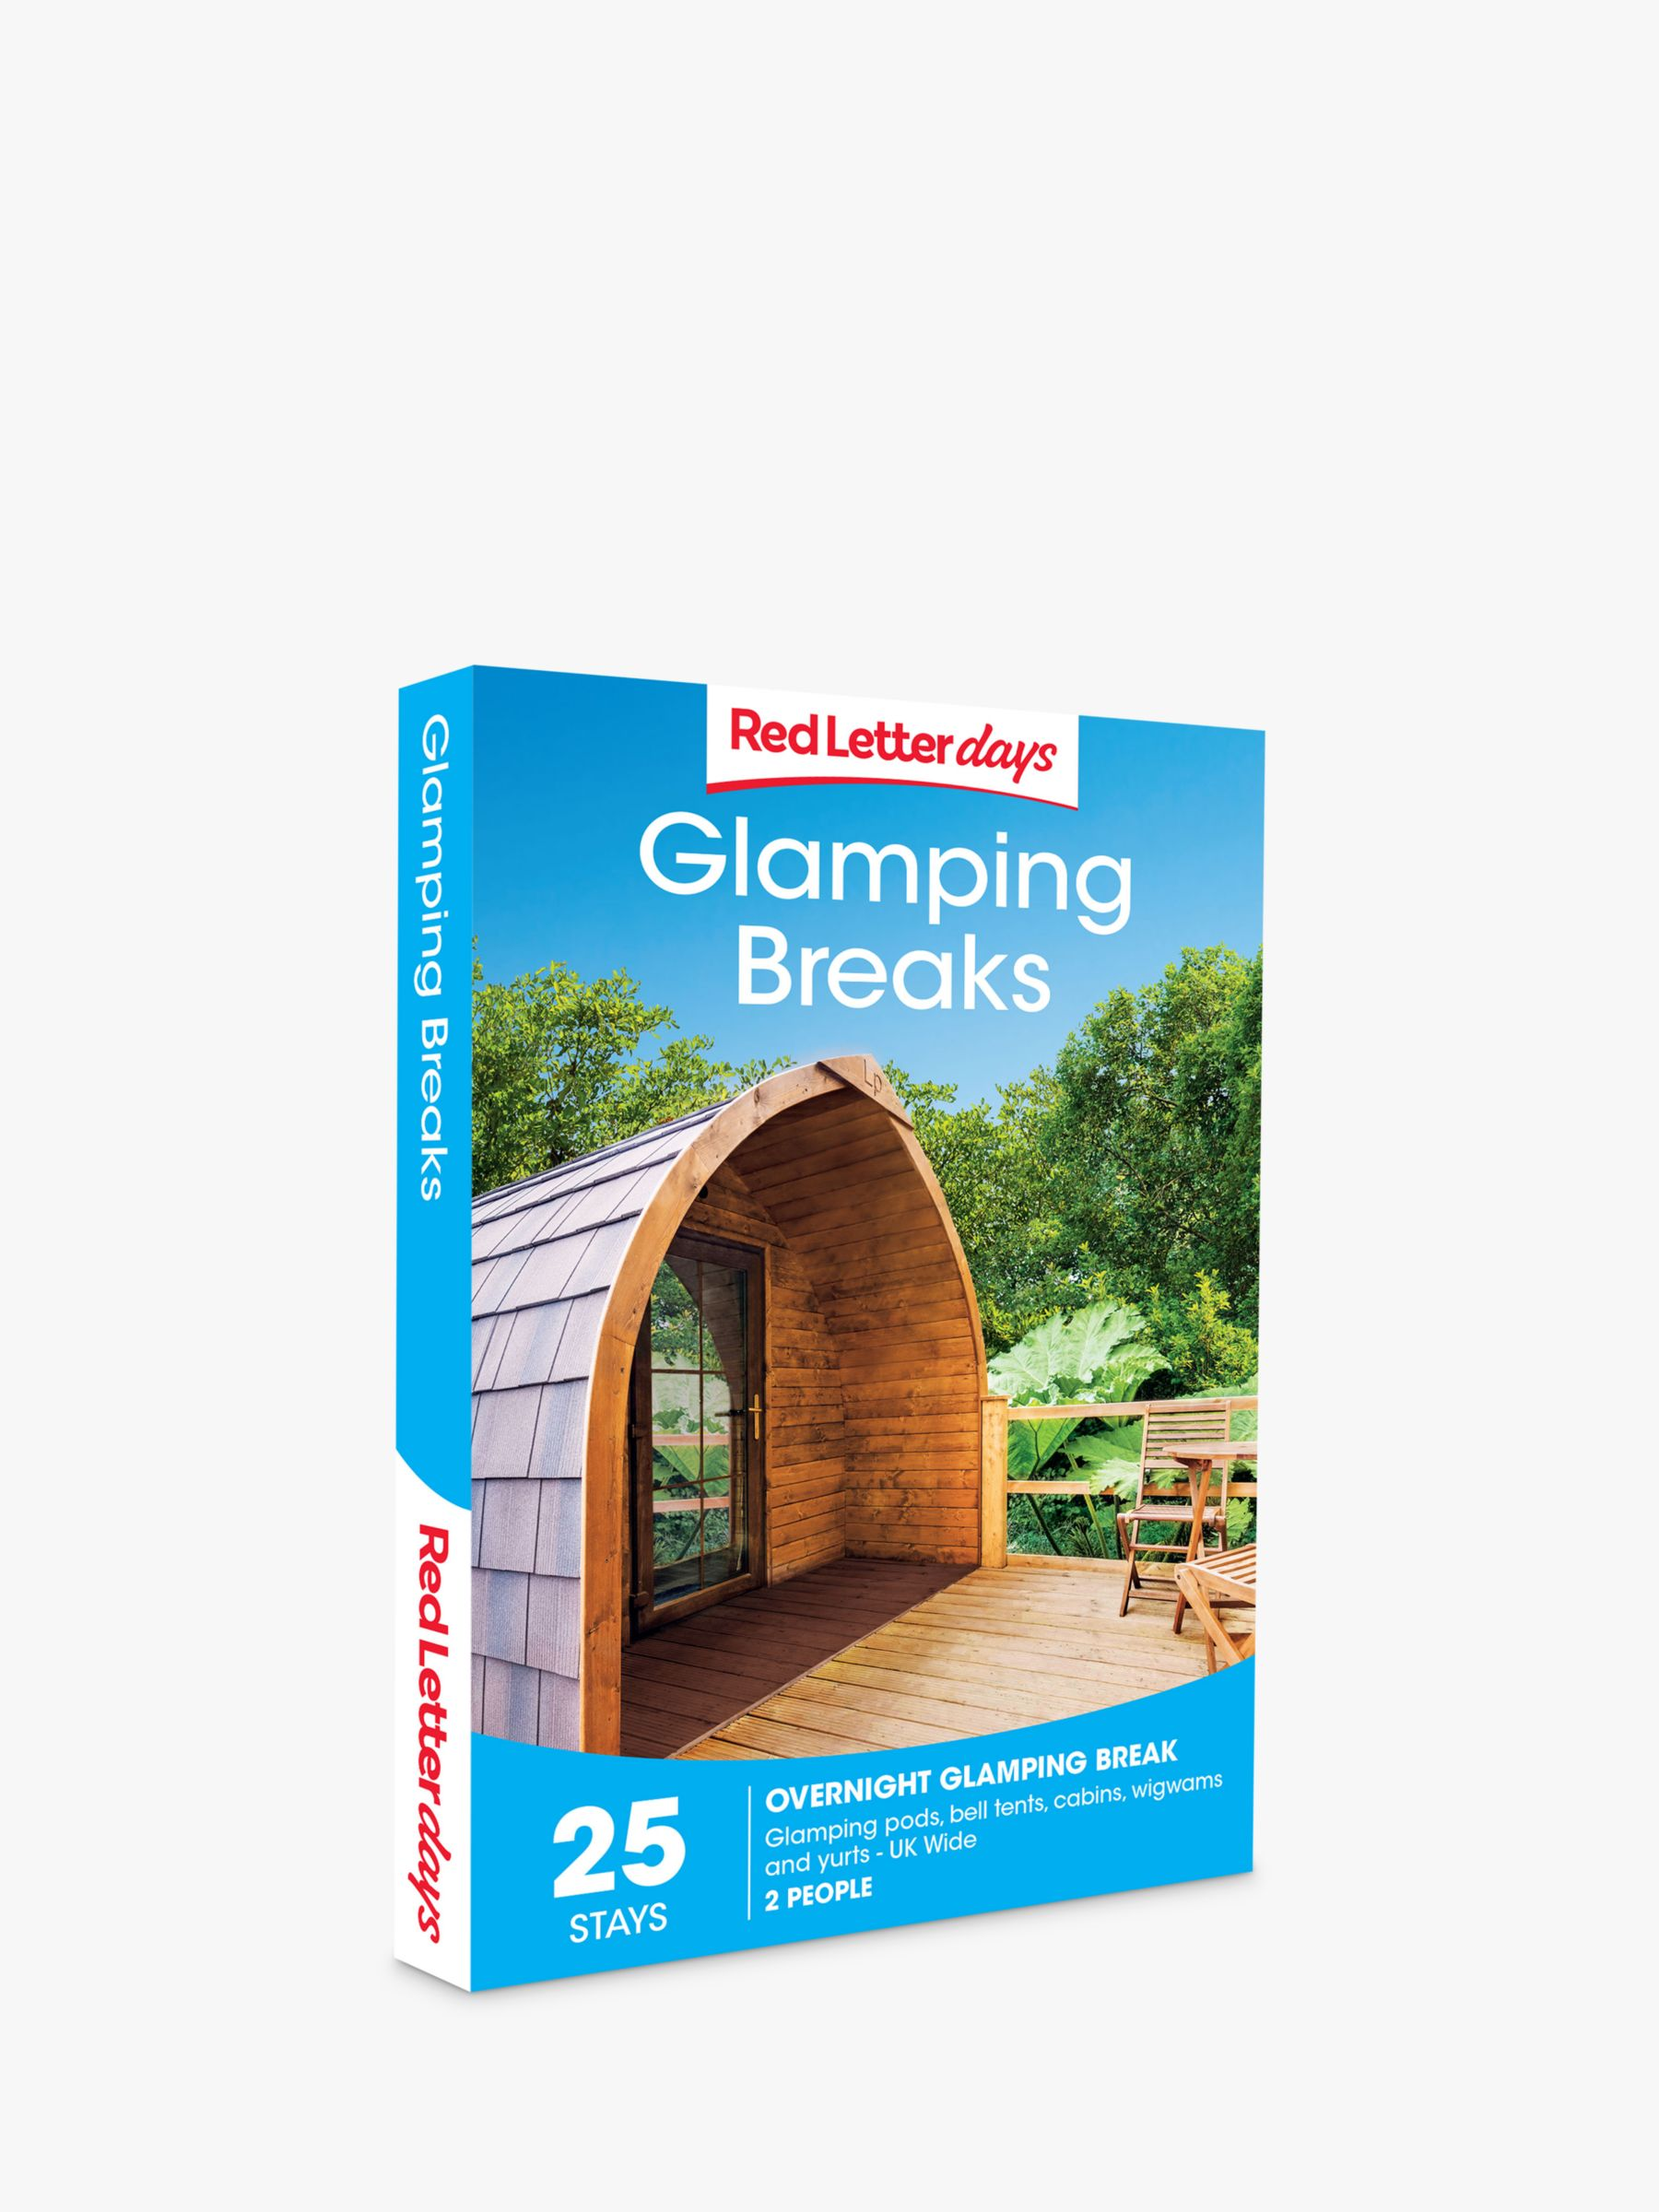 Red Letter Days Red Letter Days Glamping Breaks Gift Experience